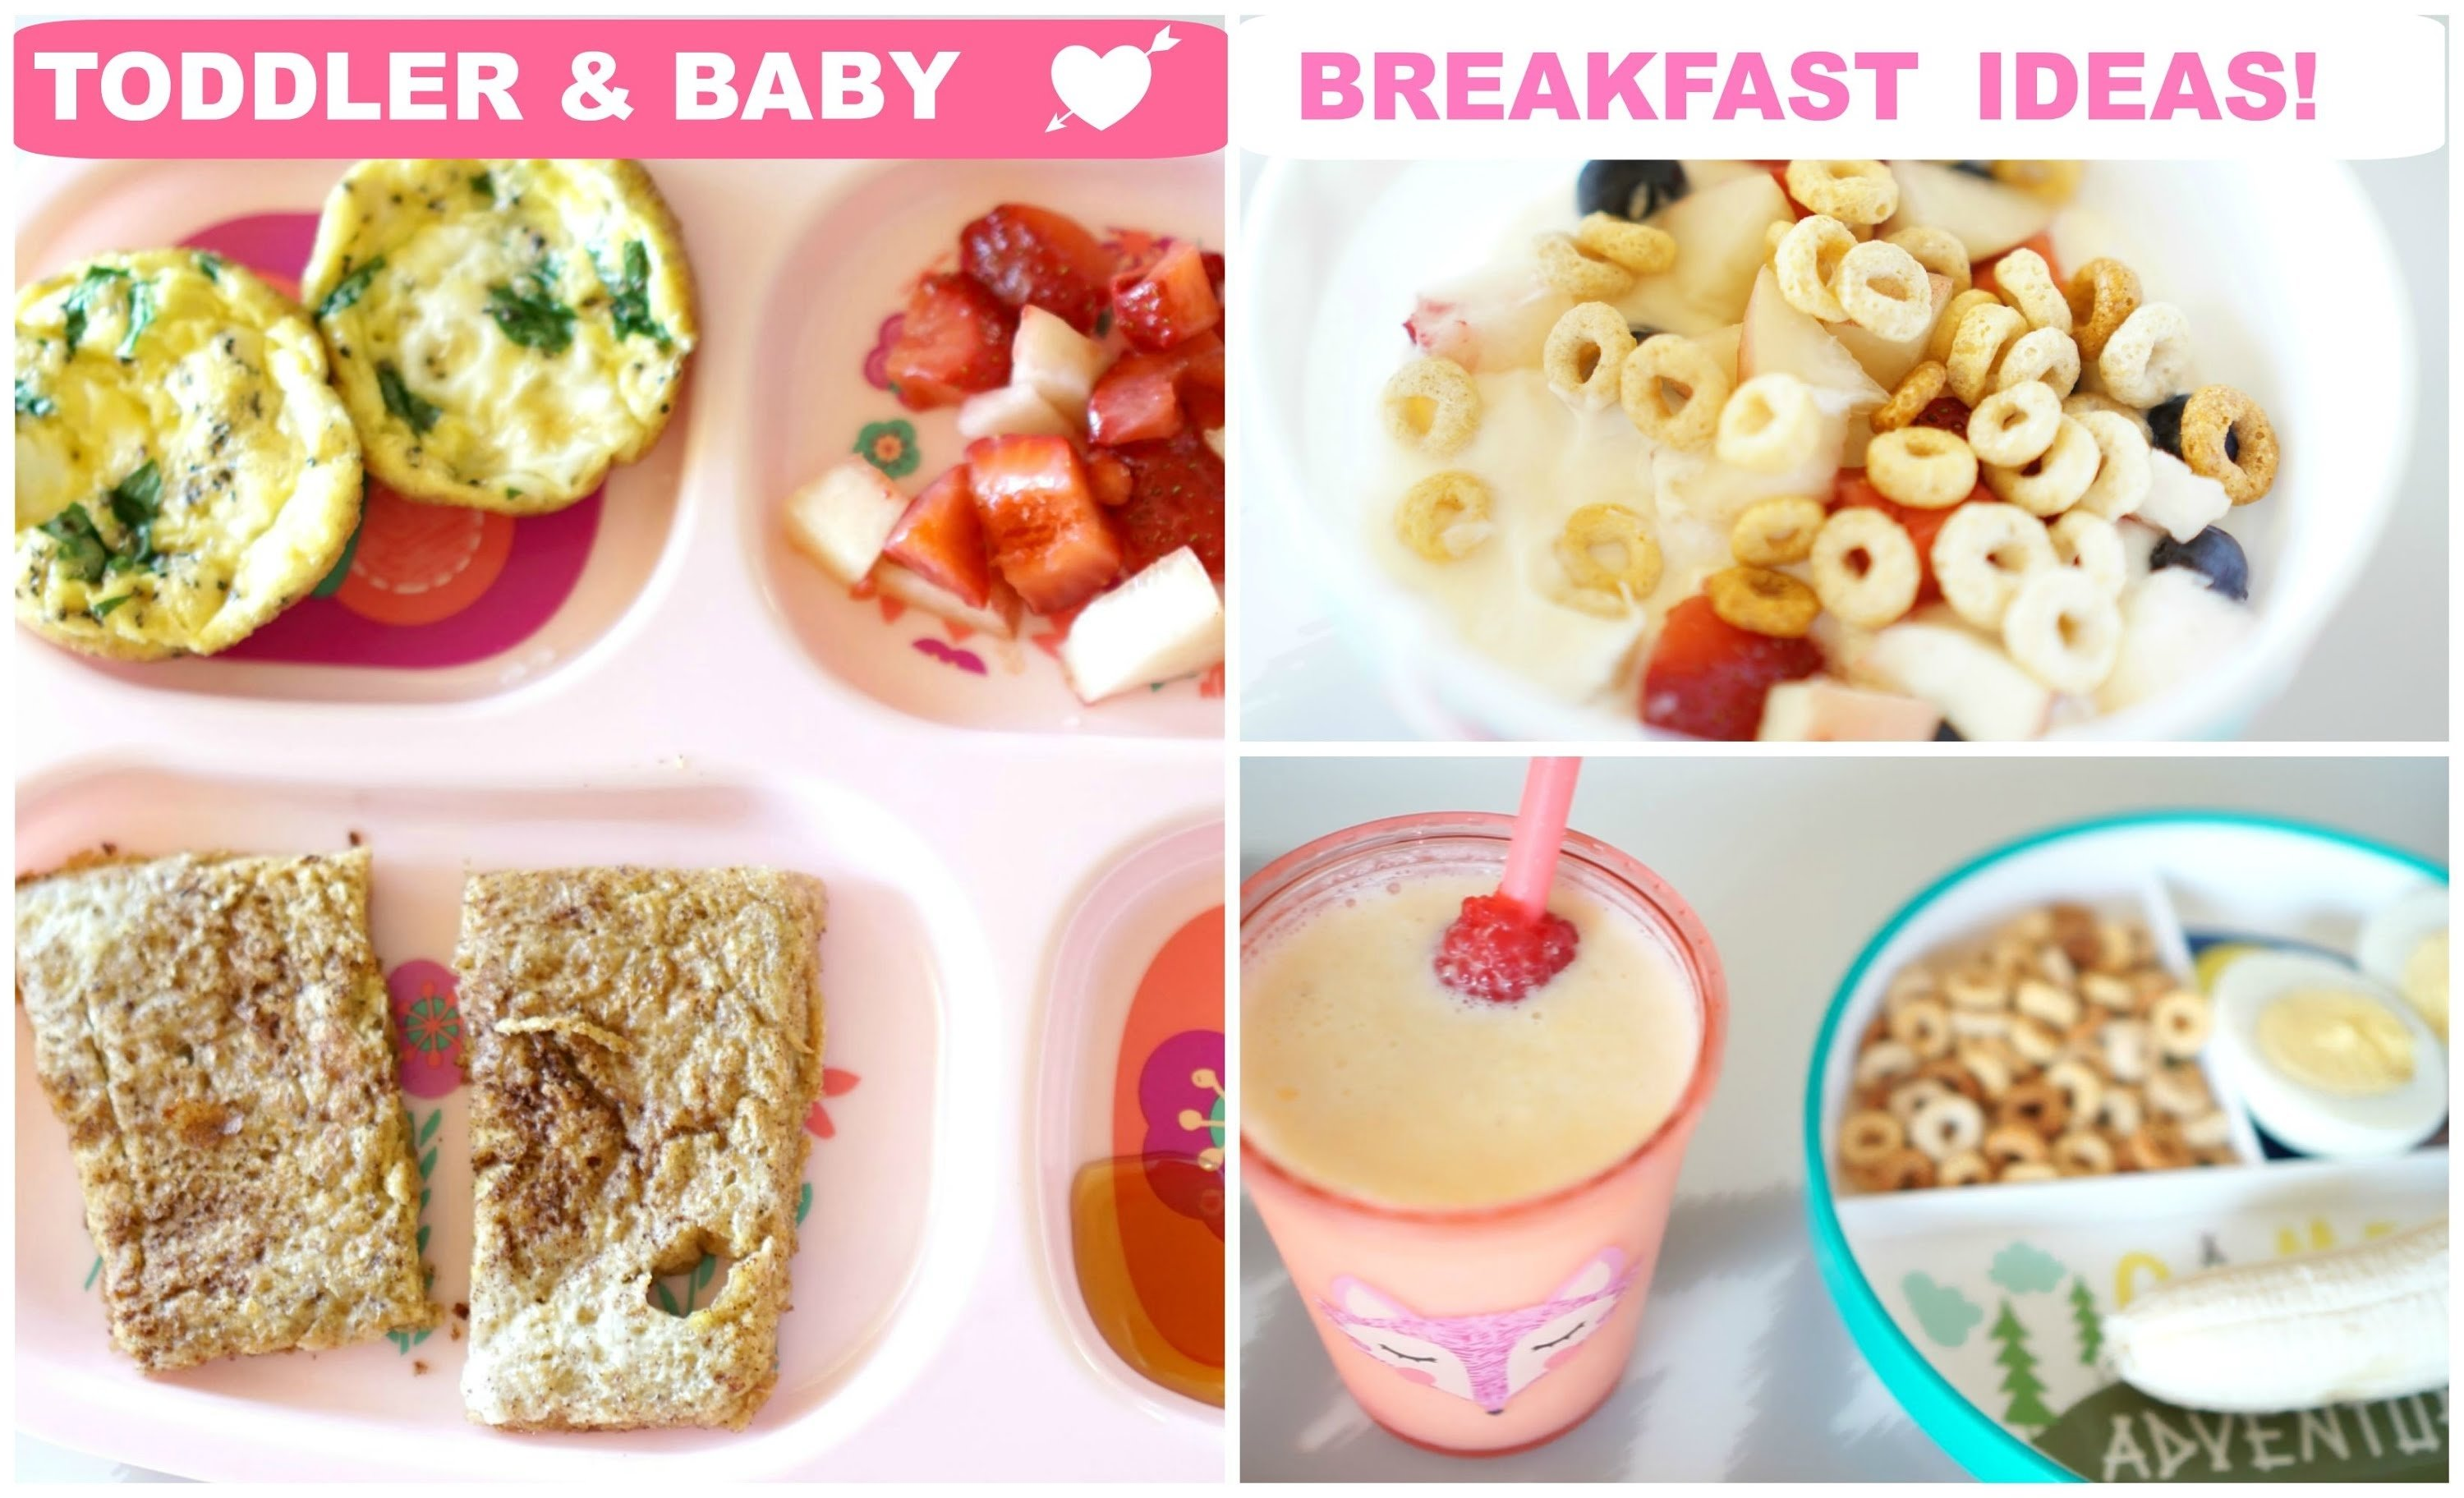 10 Lovable Breakfast Ideas For One Year Old breakfast ideas for toddler baby youtube 2021